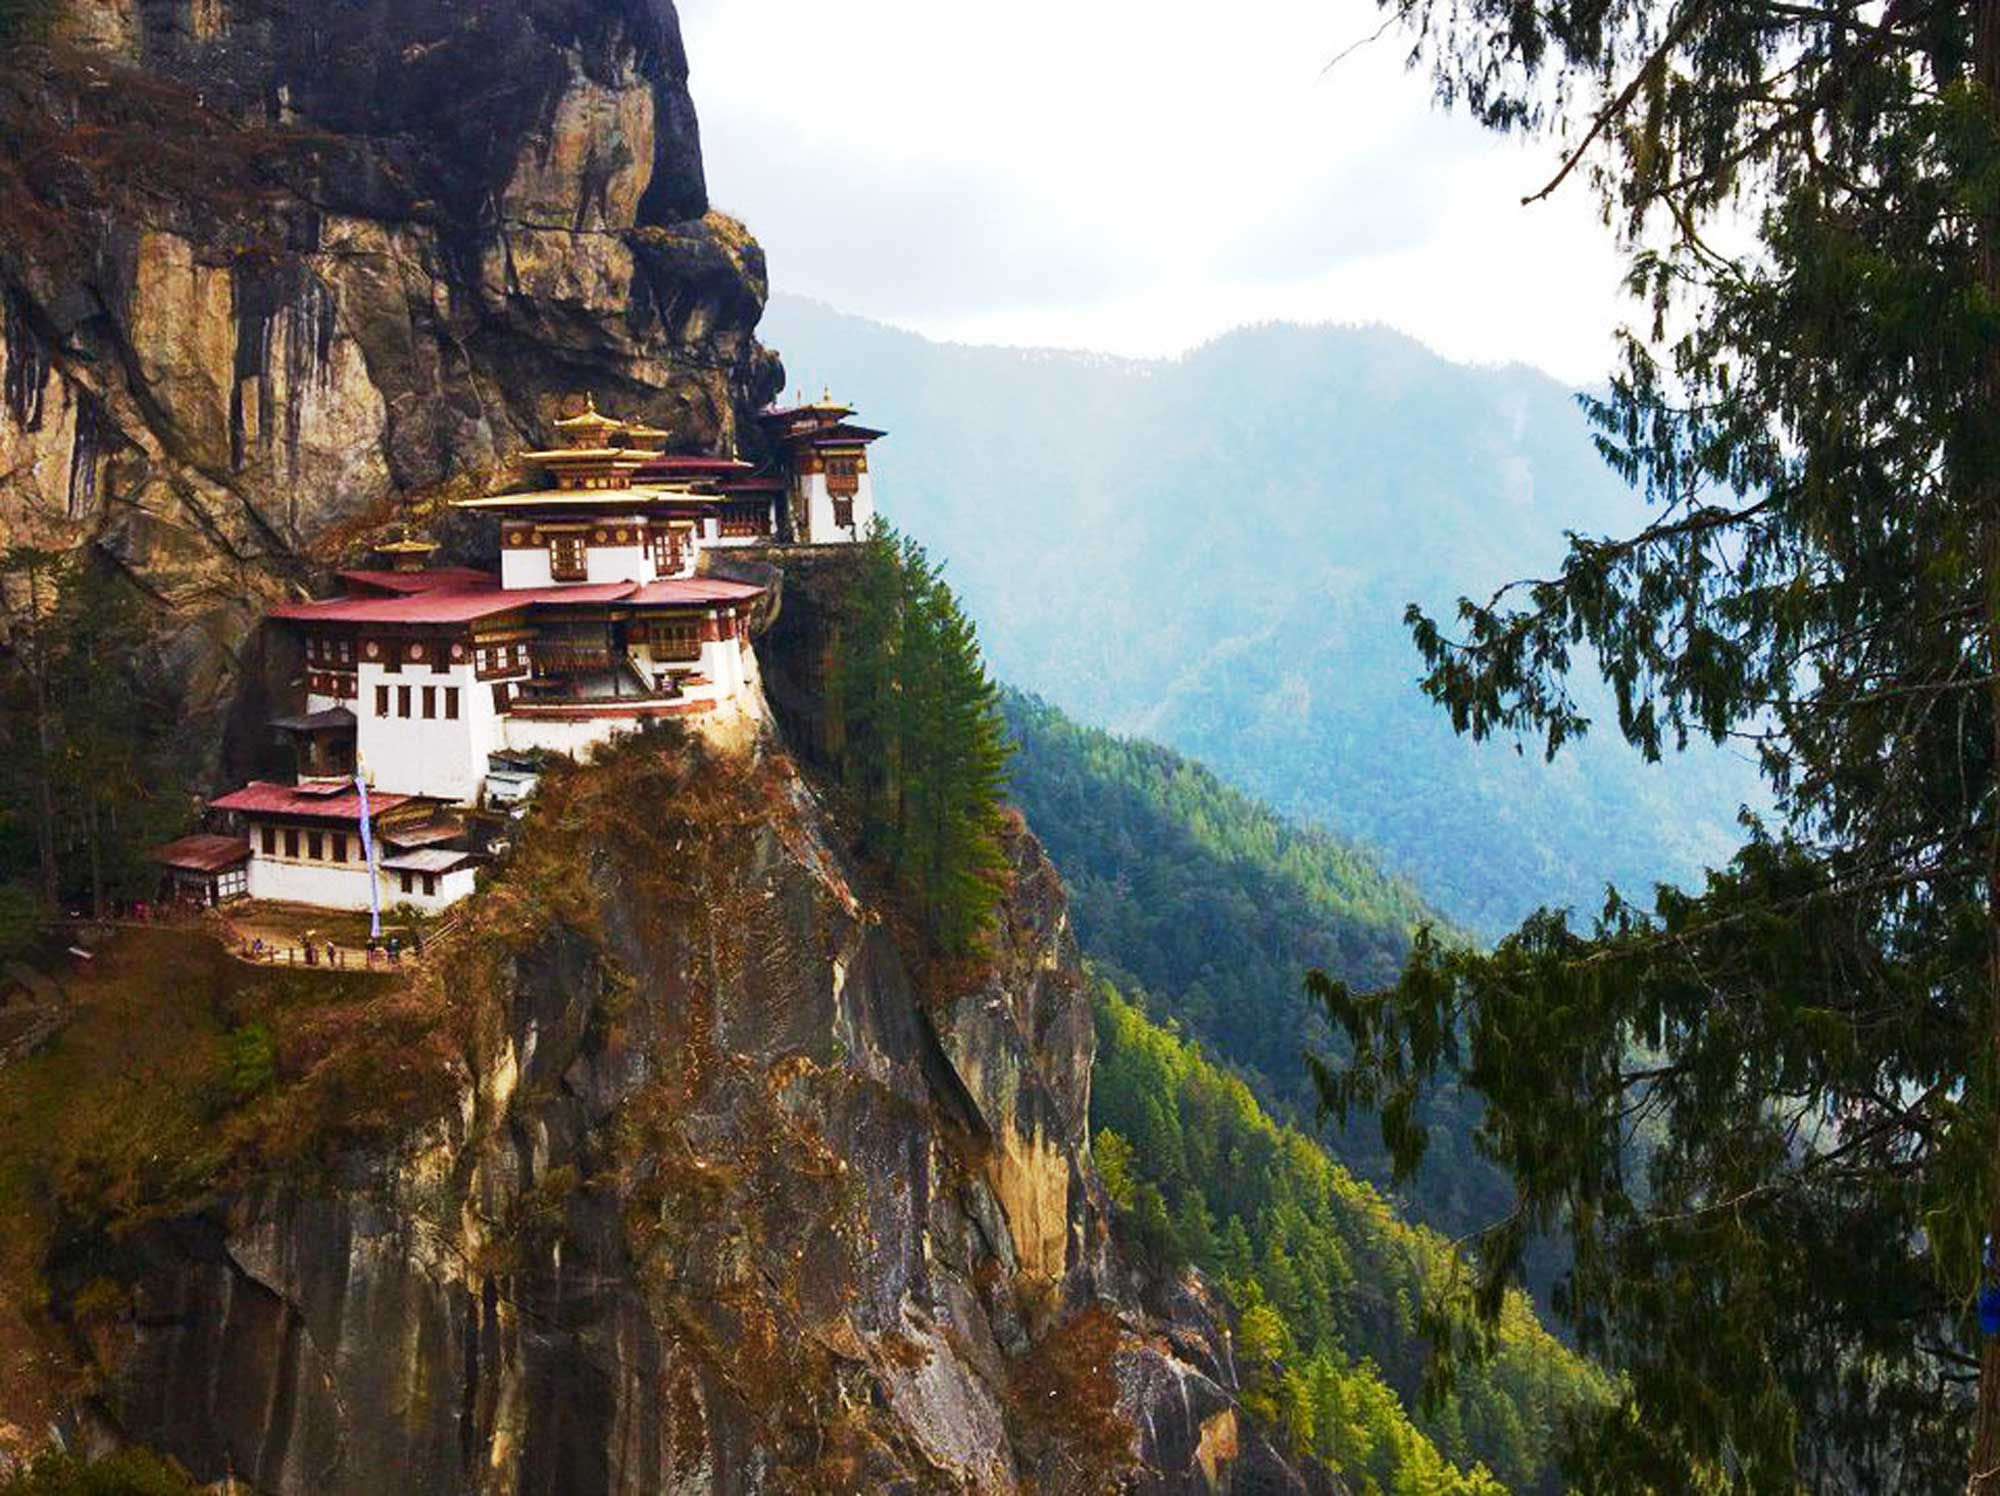 A temple perched on the edges of a mountain